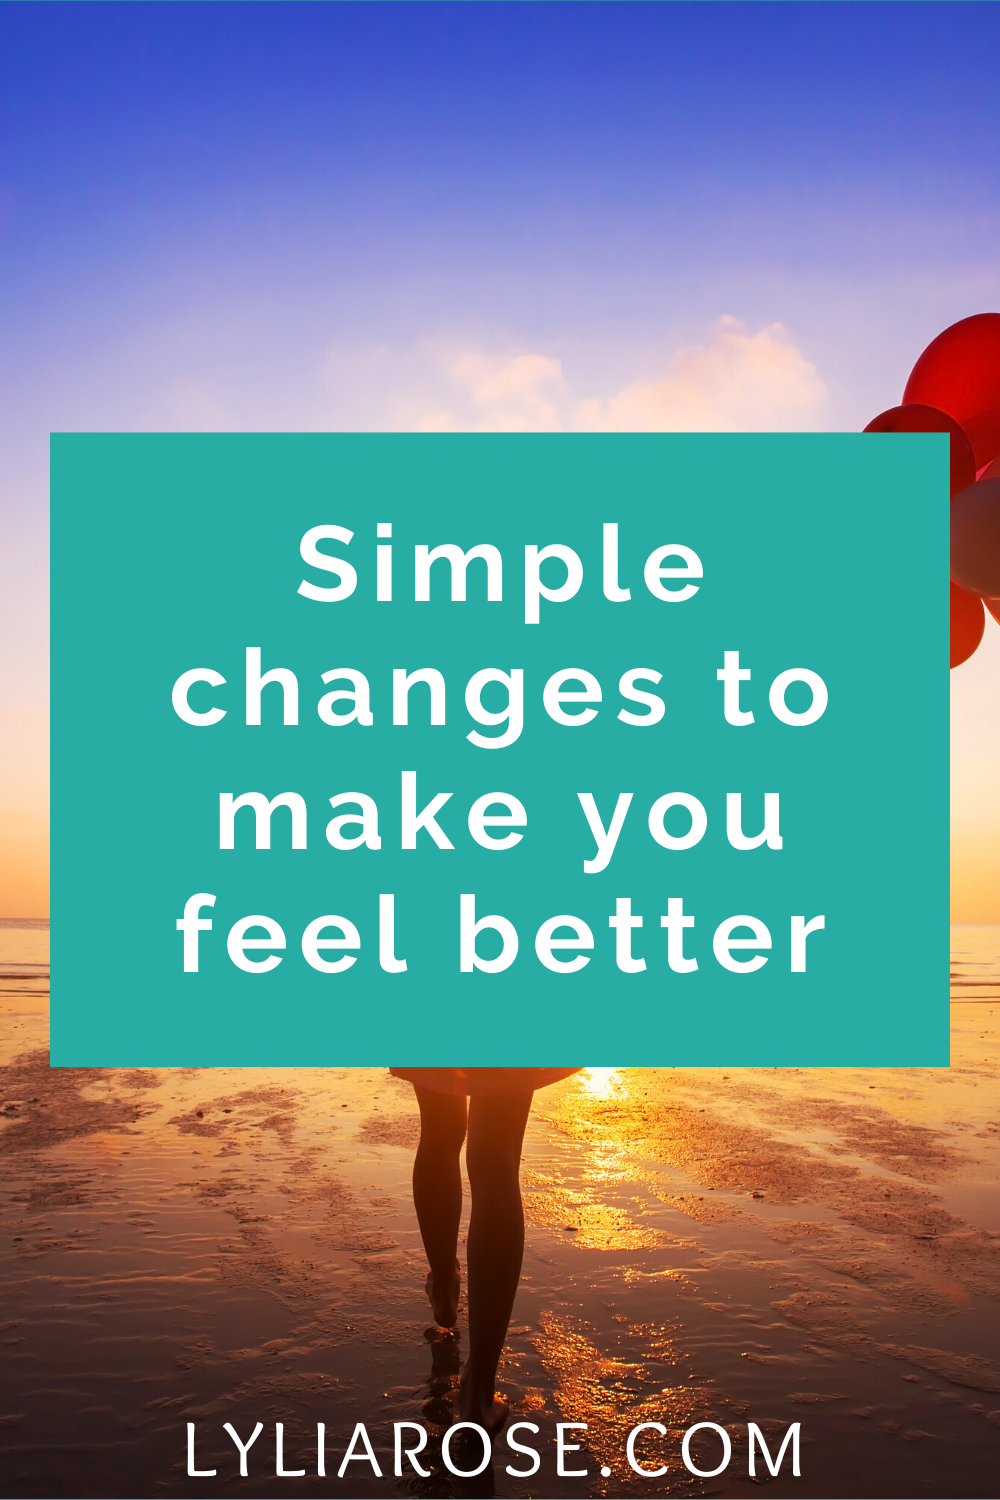 Simple changes to make you feel better